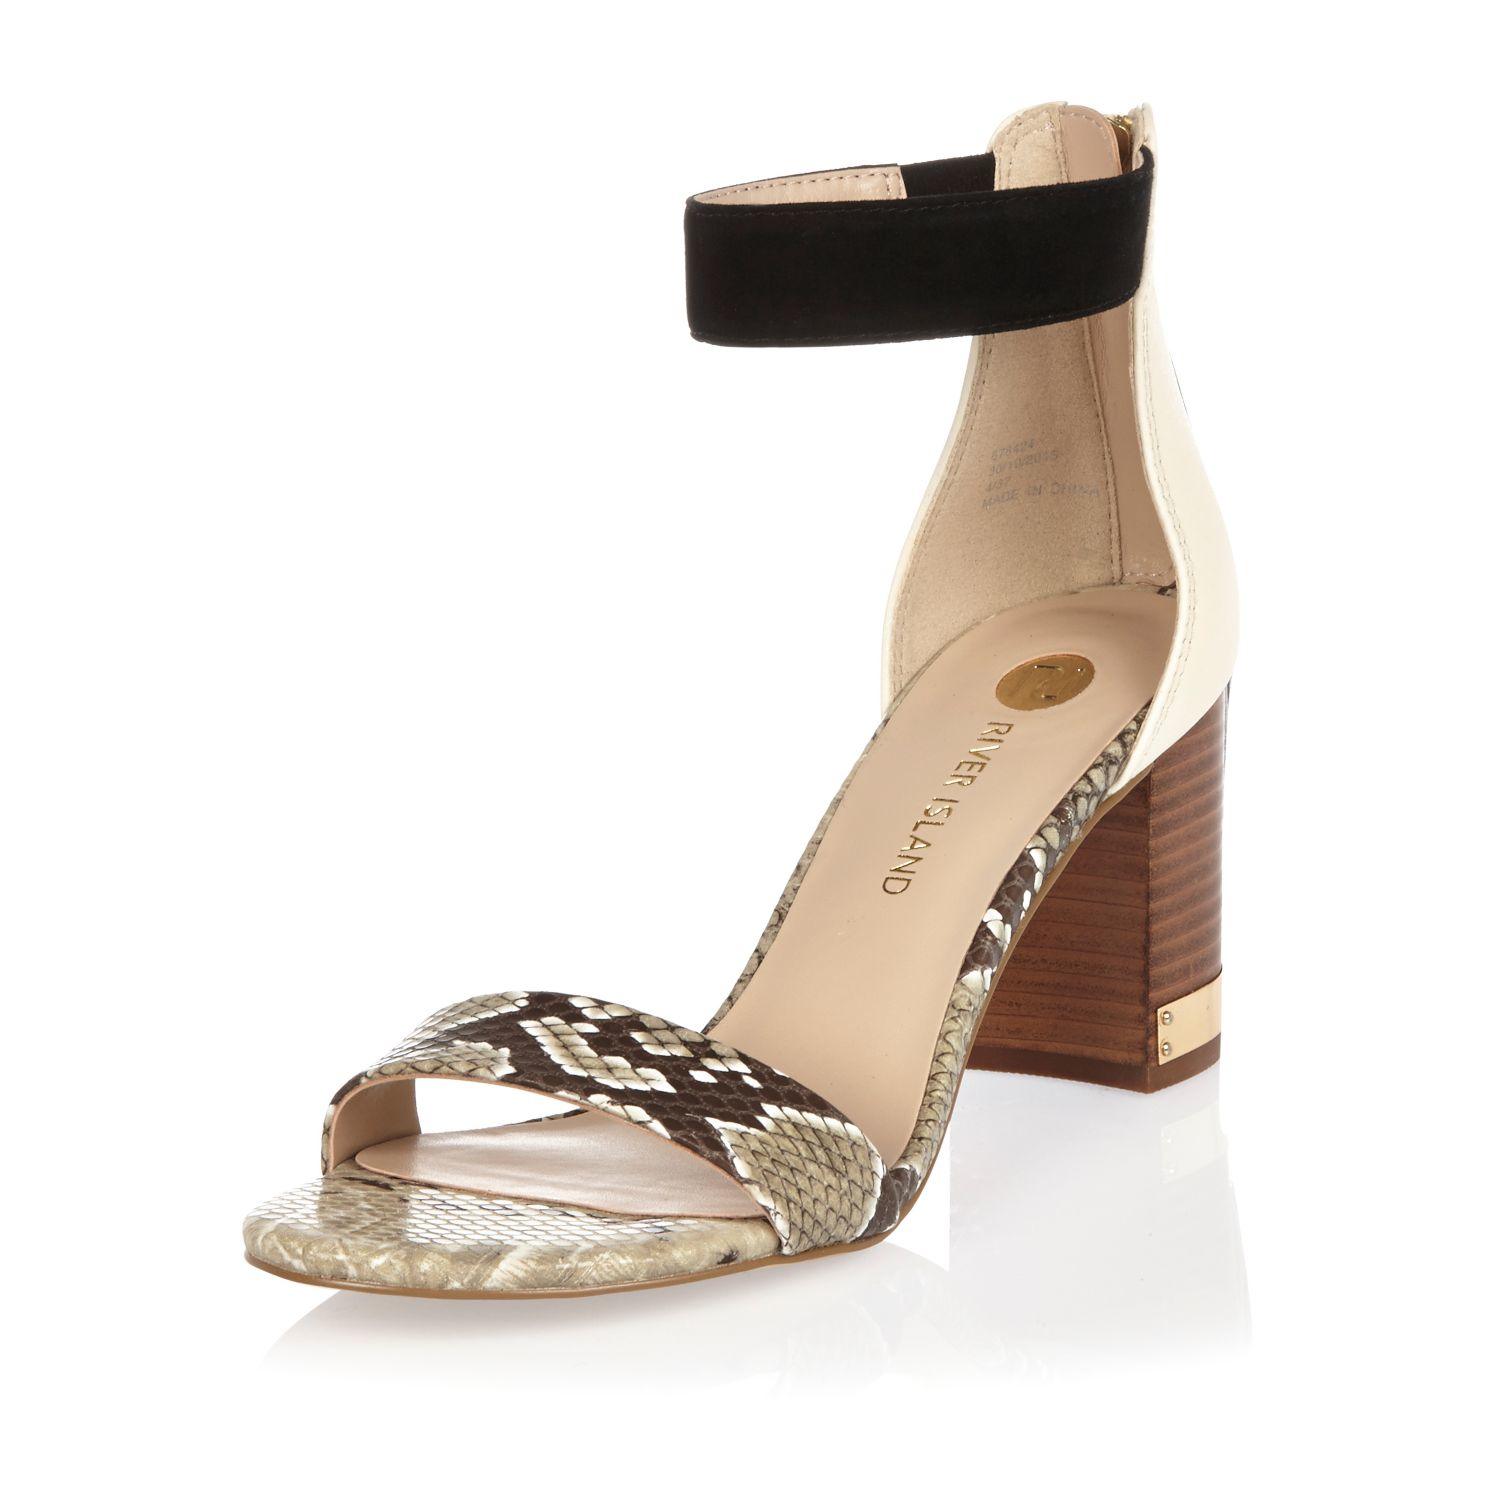 River Island Womens textile print block heel sandals